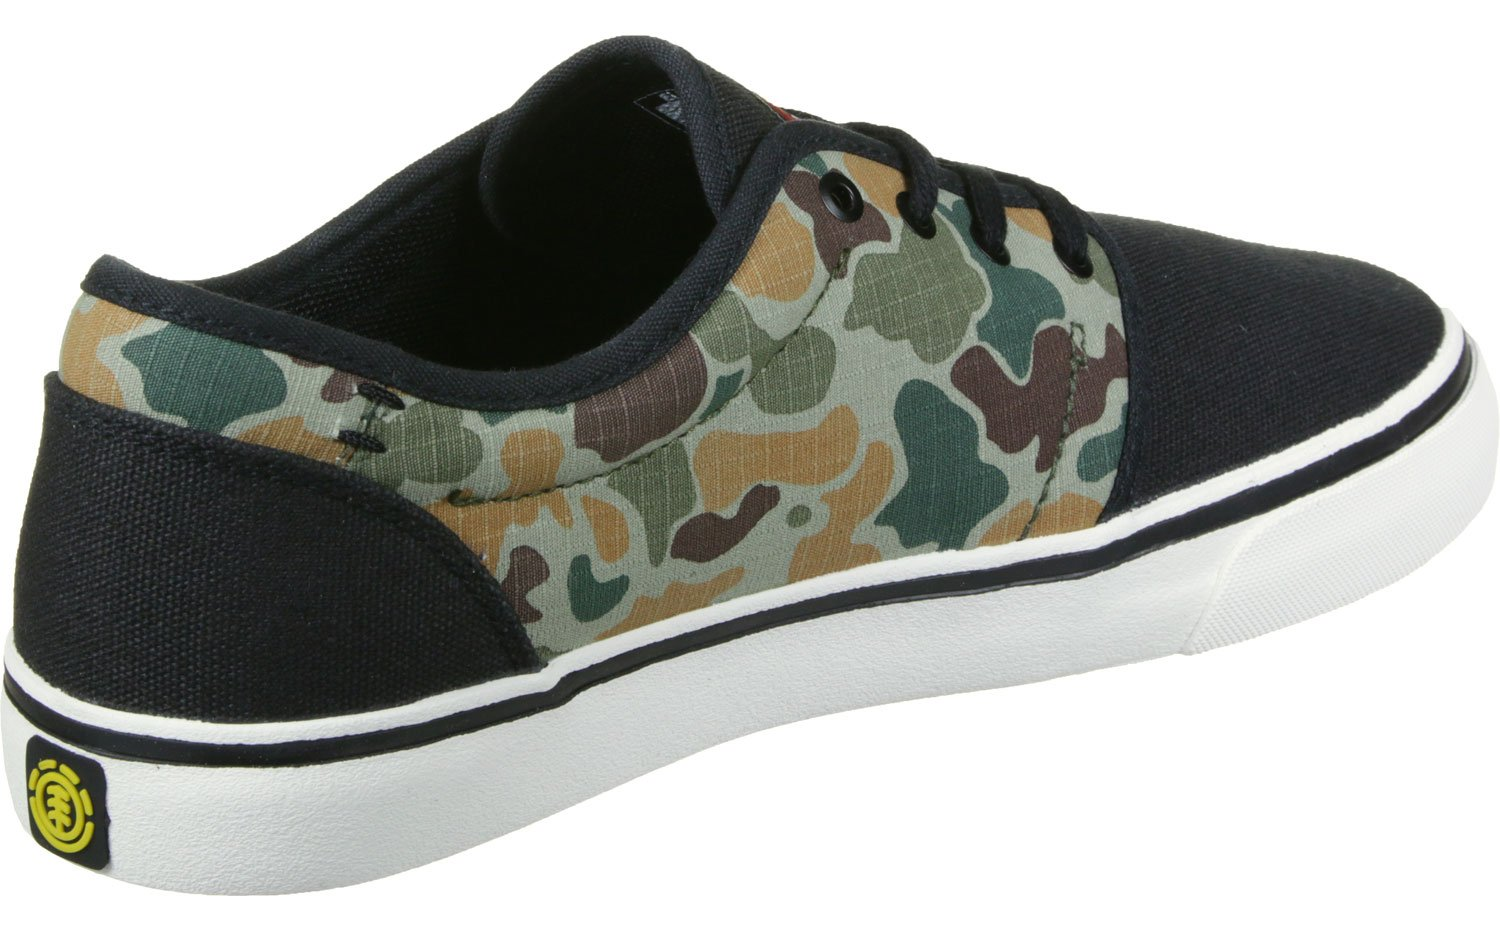 Element Darwin Scarpa jungle camo